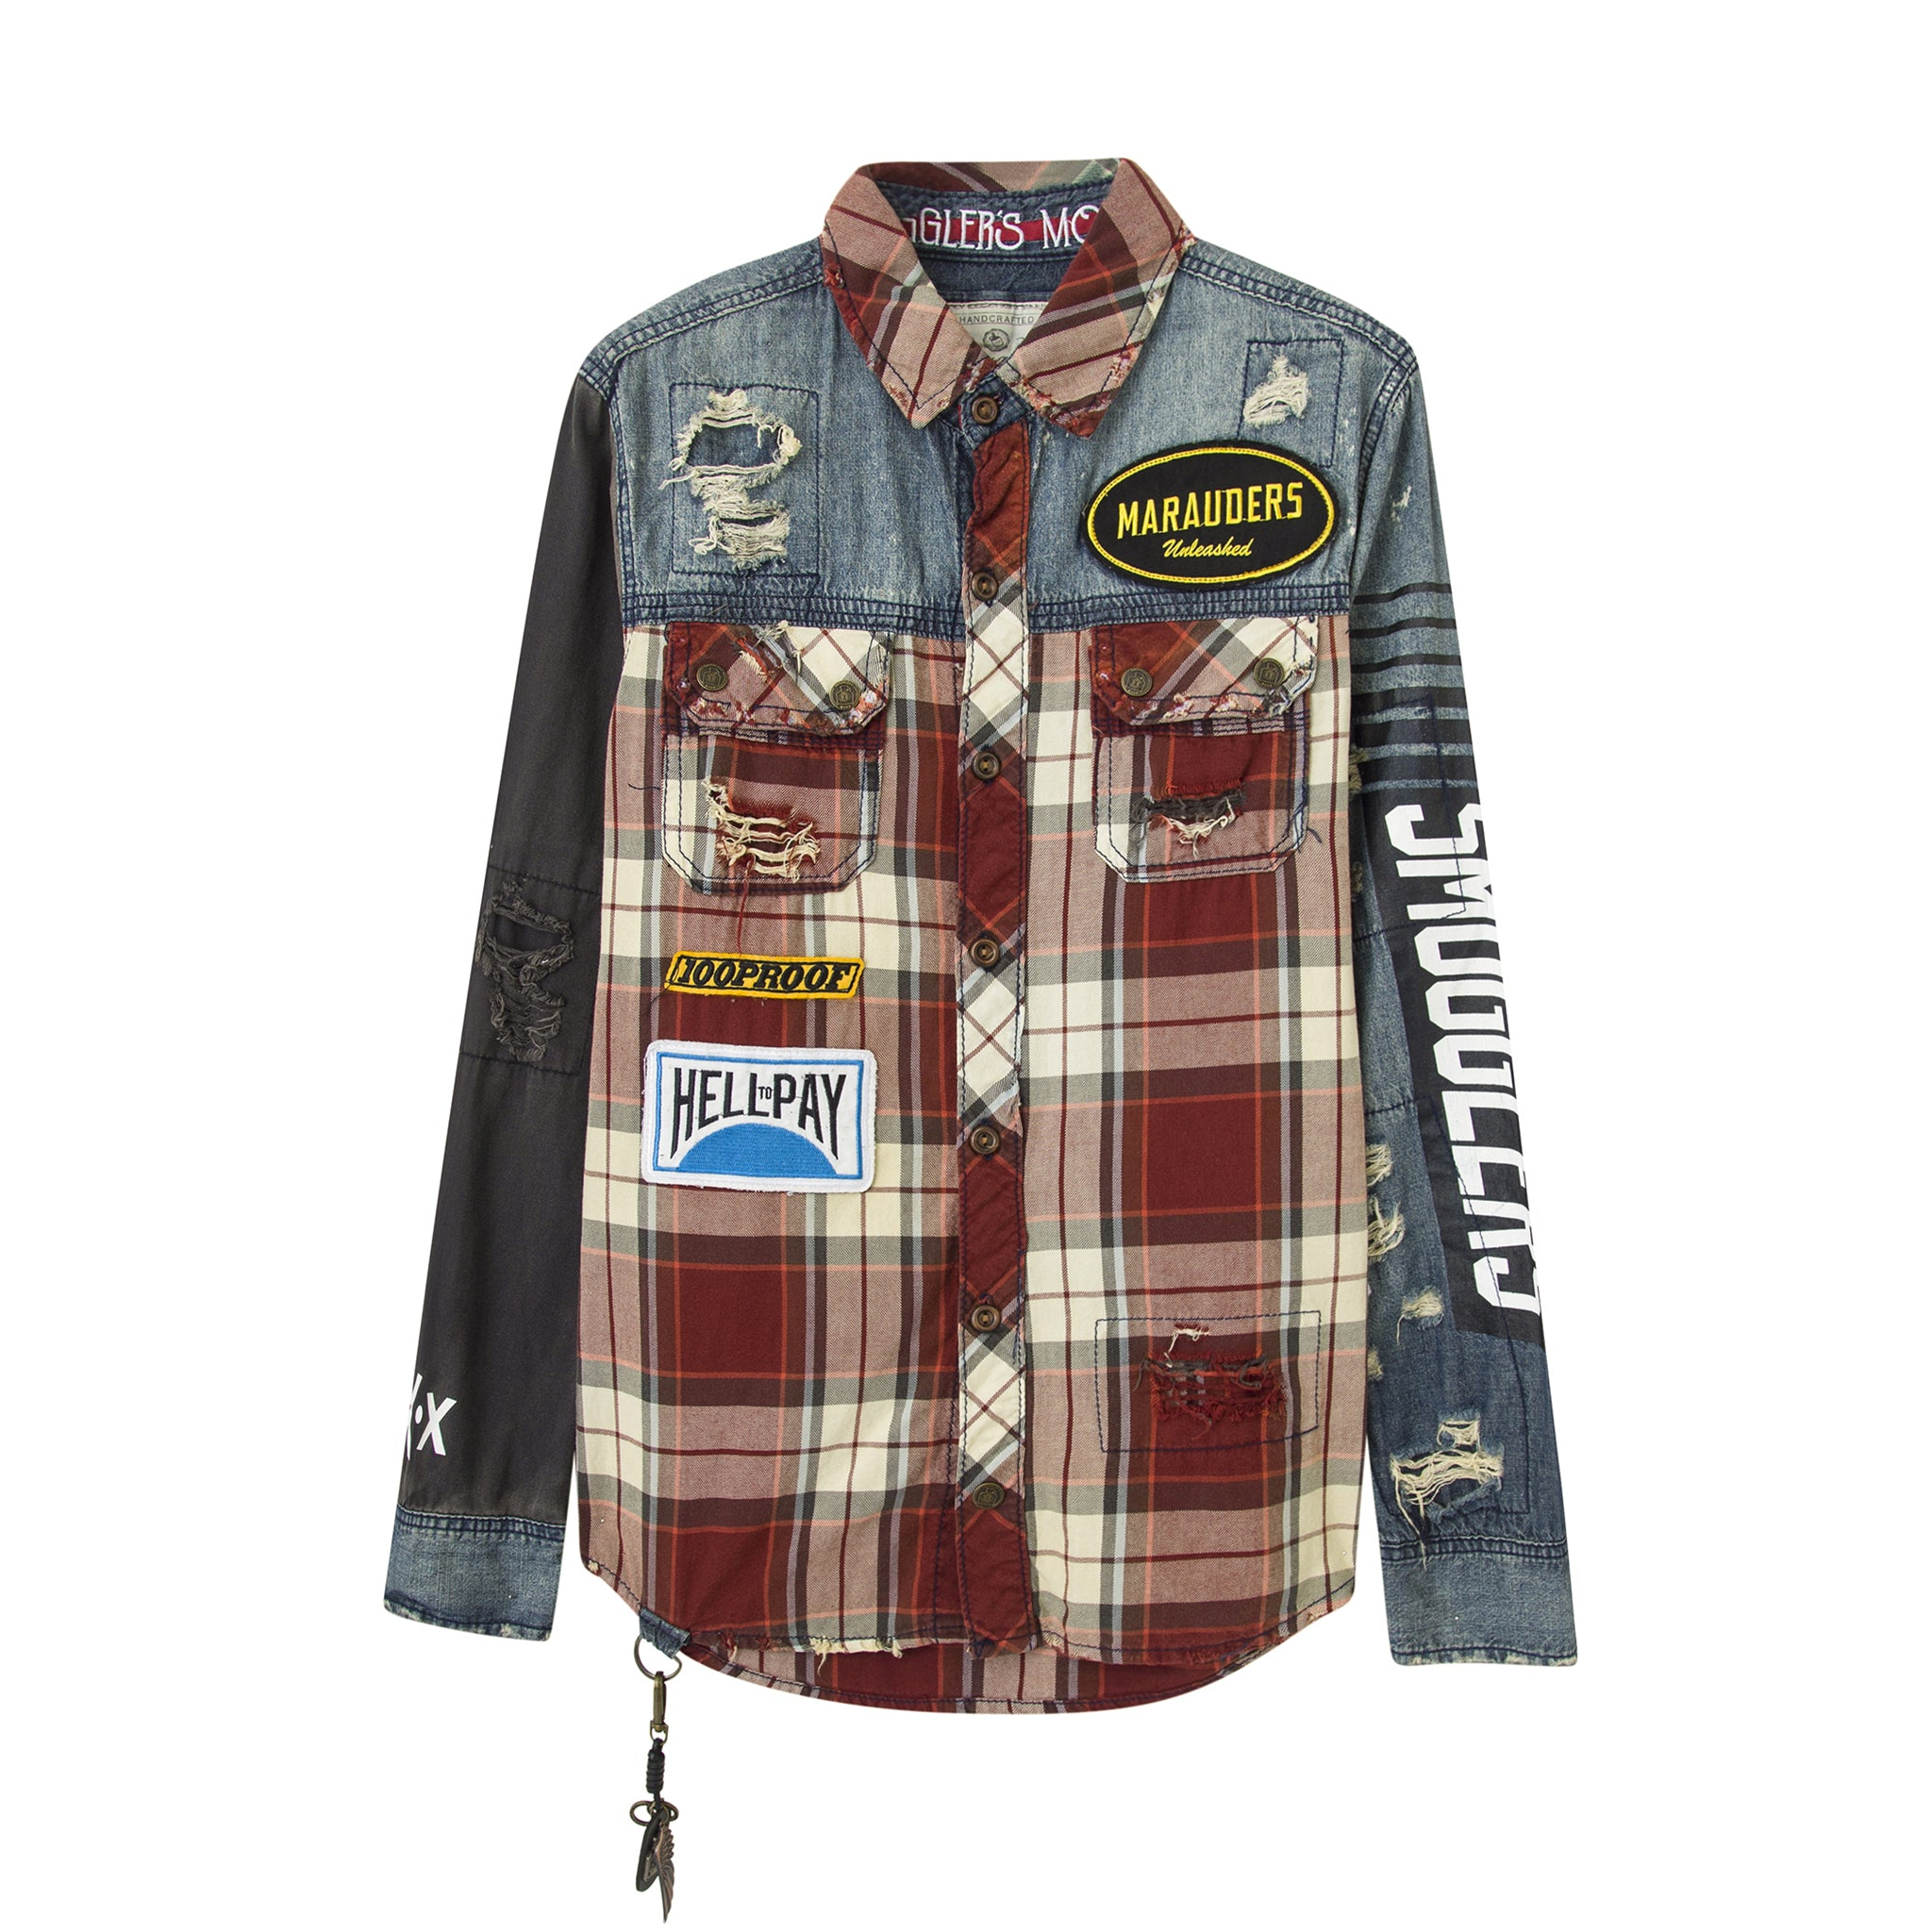 Load image into Gallery viewer, Marauders Distressed Denim and Plaid Mechanics shirt